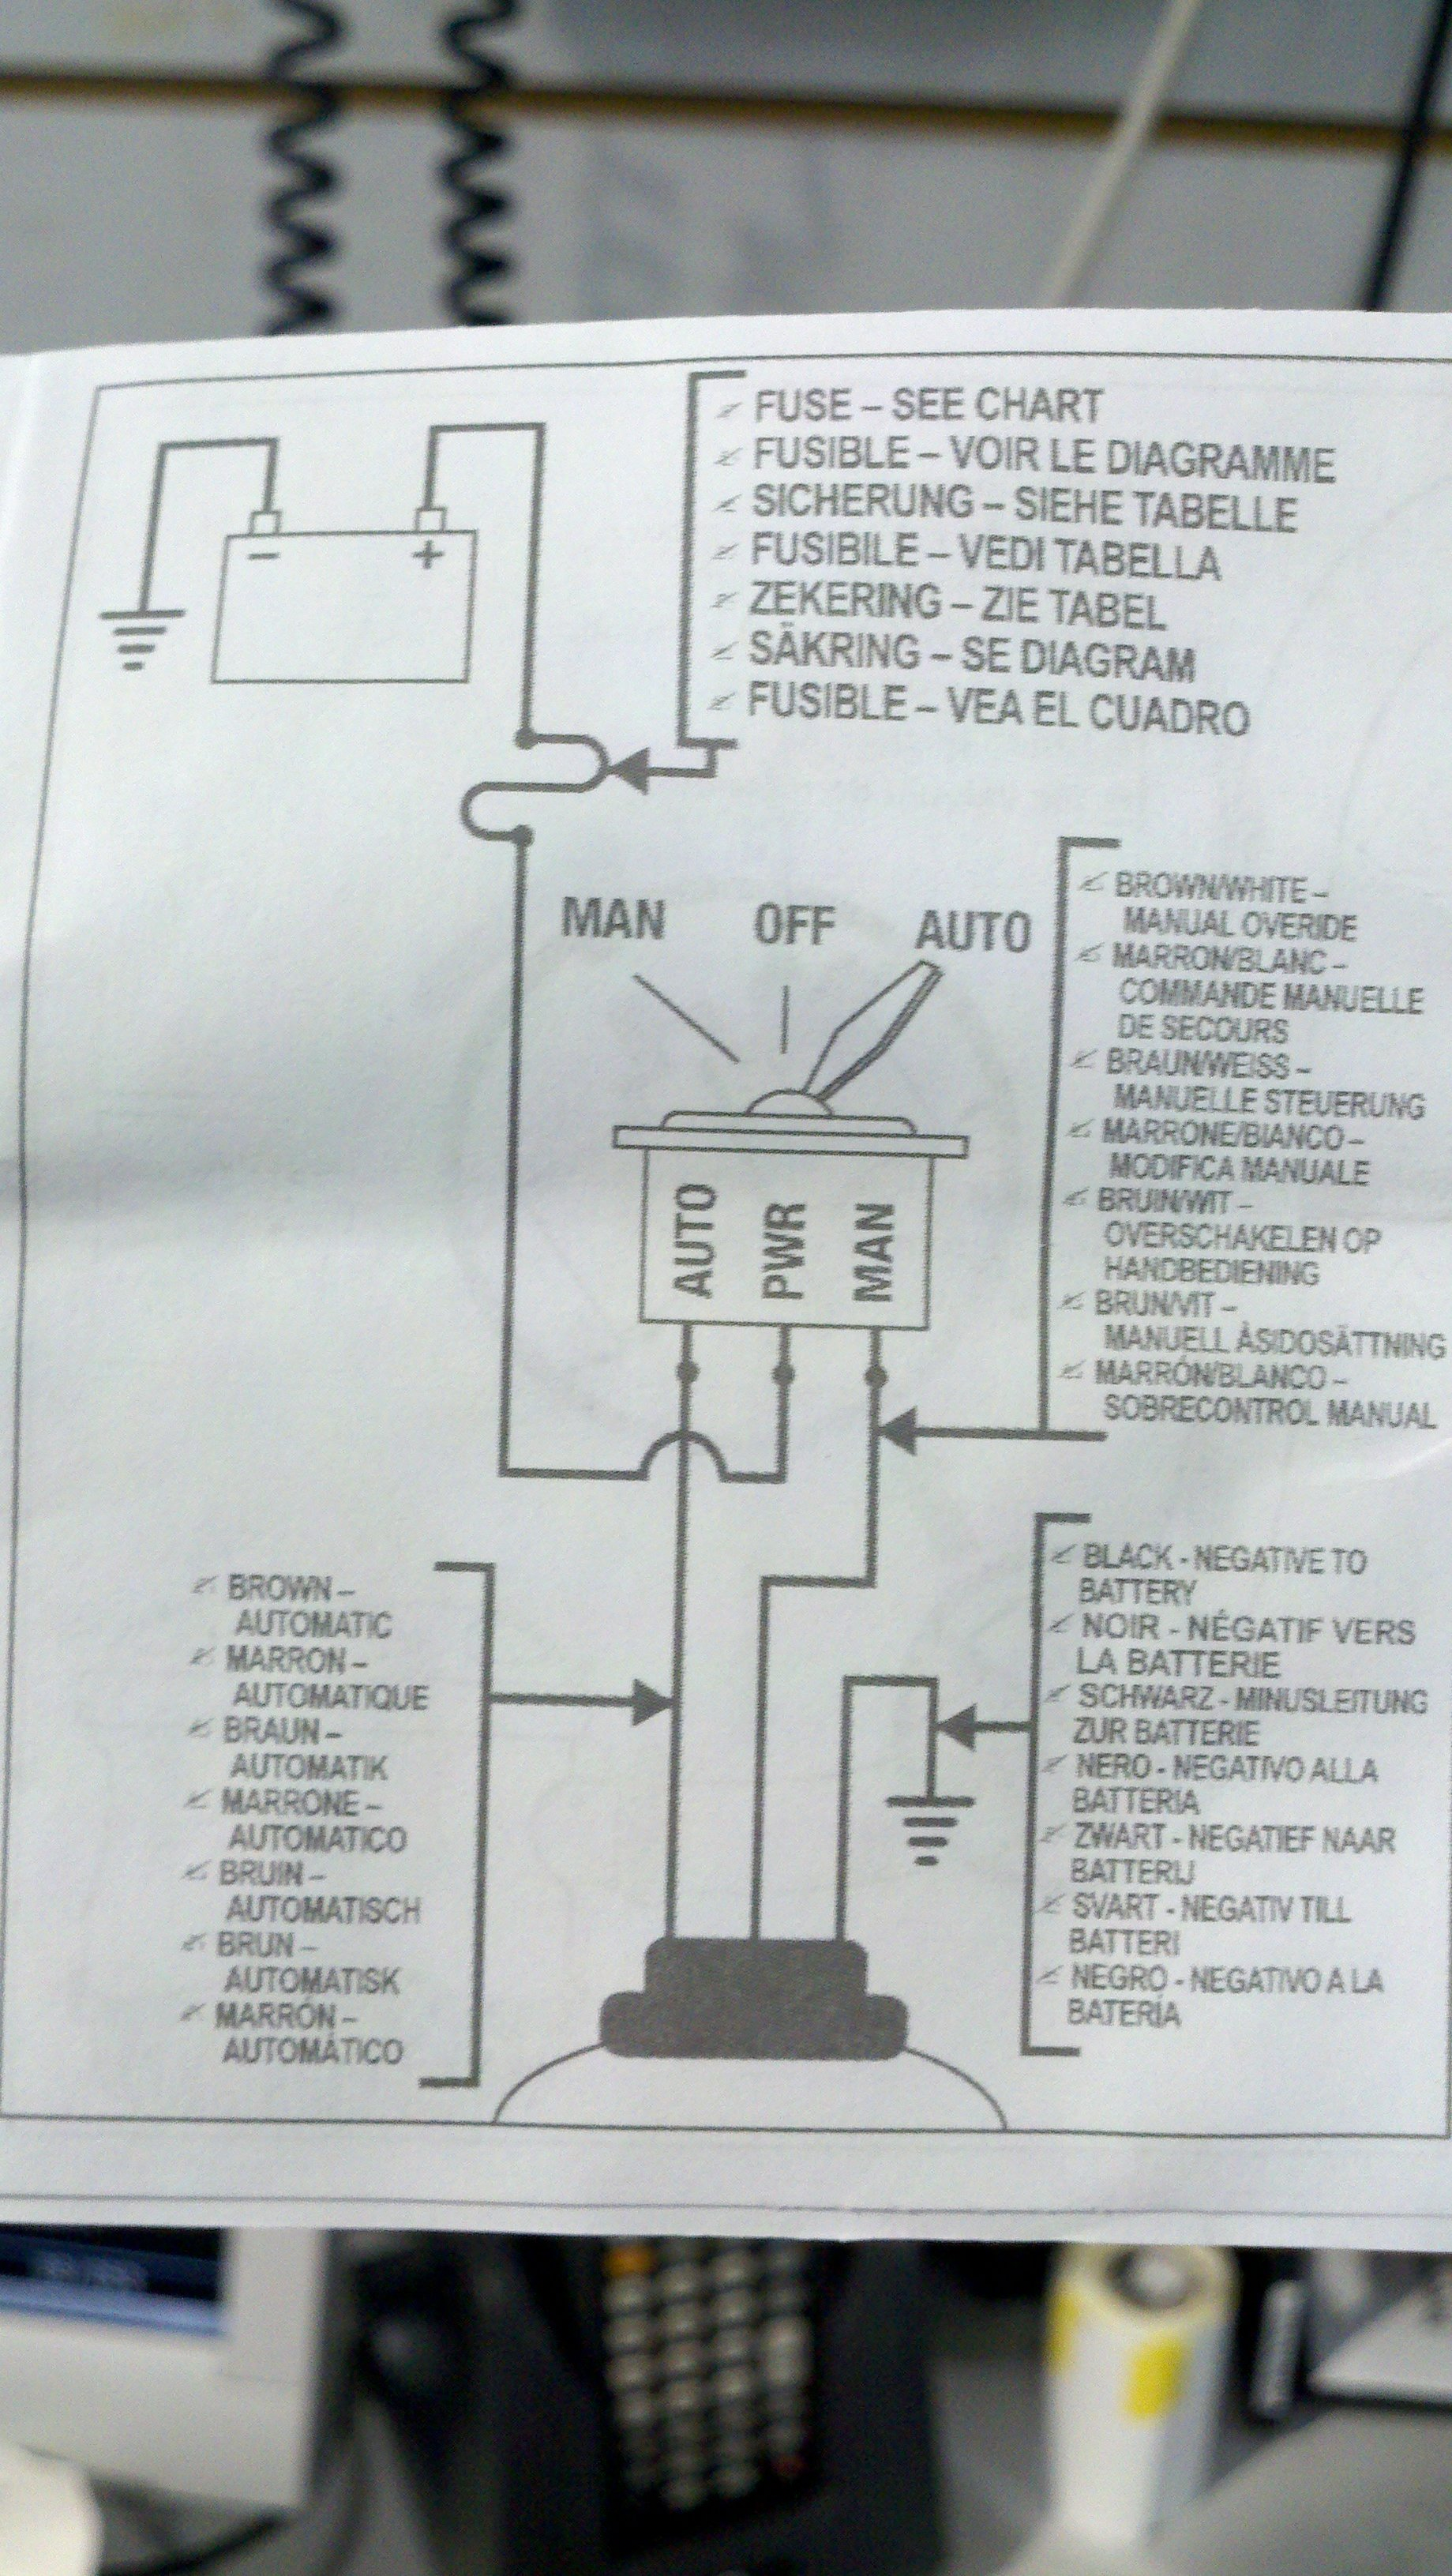 DS_4275] Switch Wiring Diagram On Wiring Diagram For Rule Bilge Pump Switch Wiring  DiagramFrag Frag Teria Unre Garna Mohammedshrine Librar Wiring 101